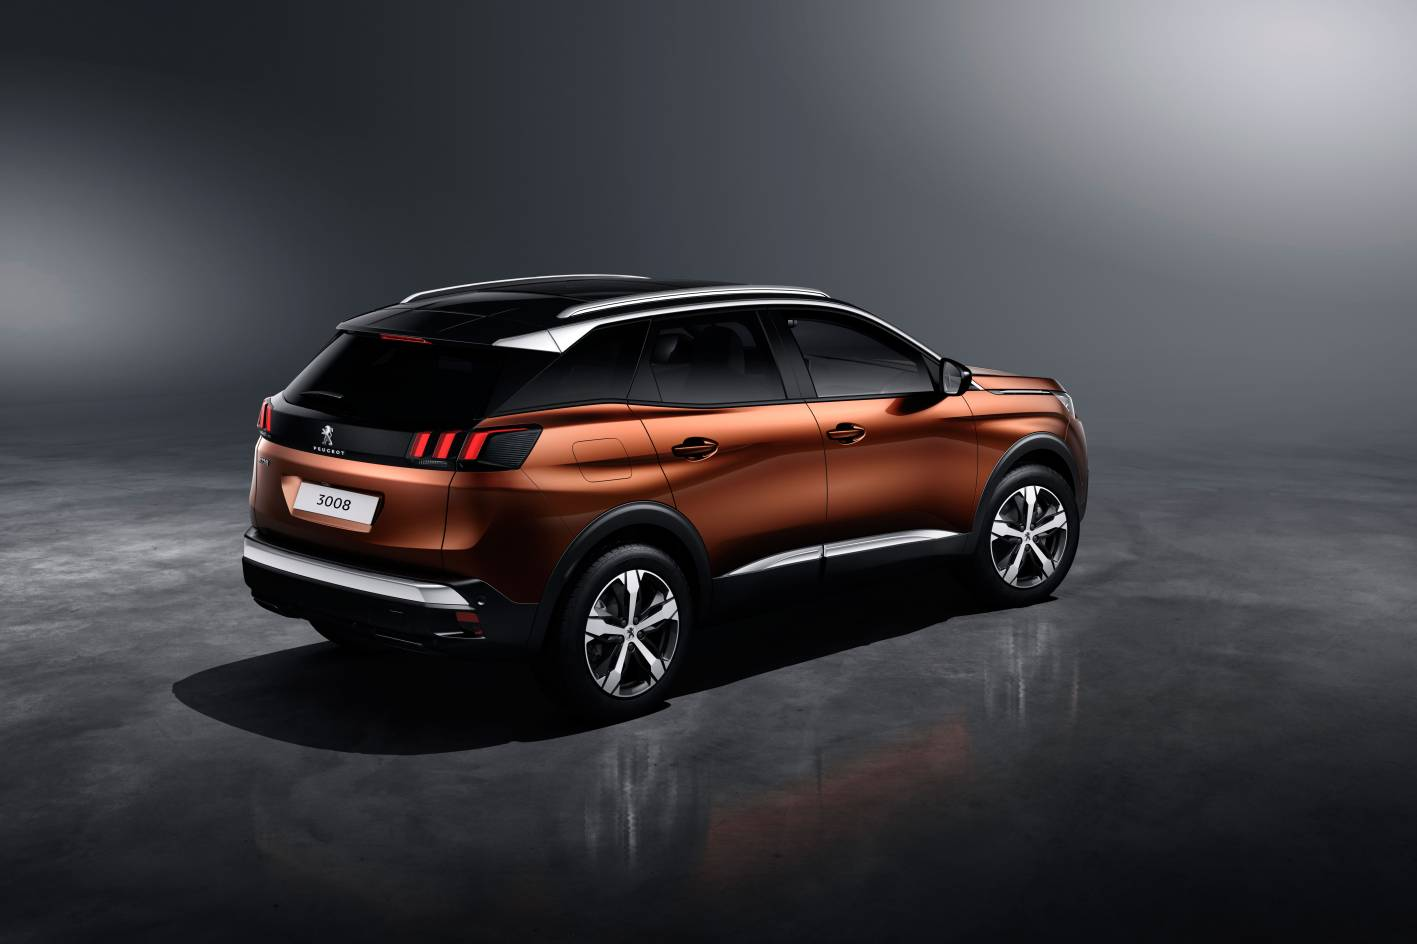 Peugeot Cars - News: All-new 2017 Peugeot 3008 SUV unveiled